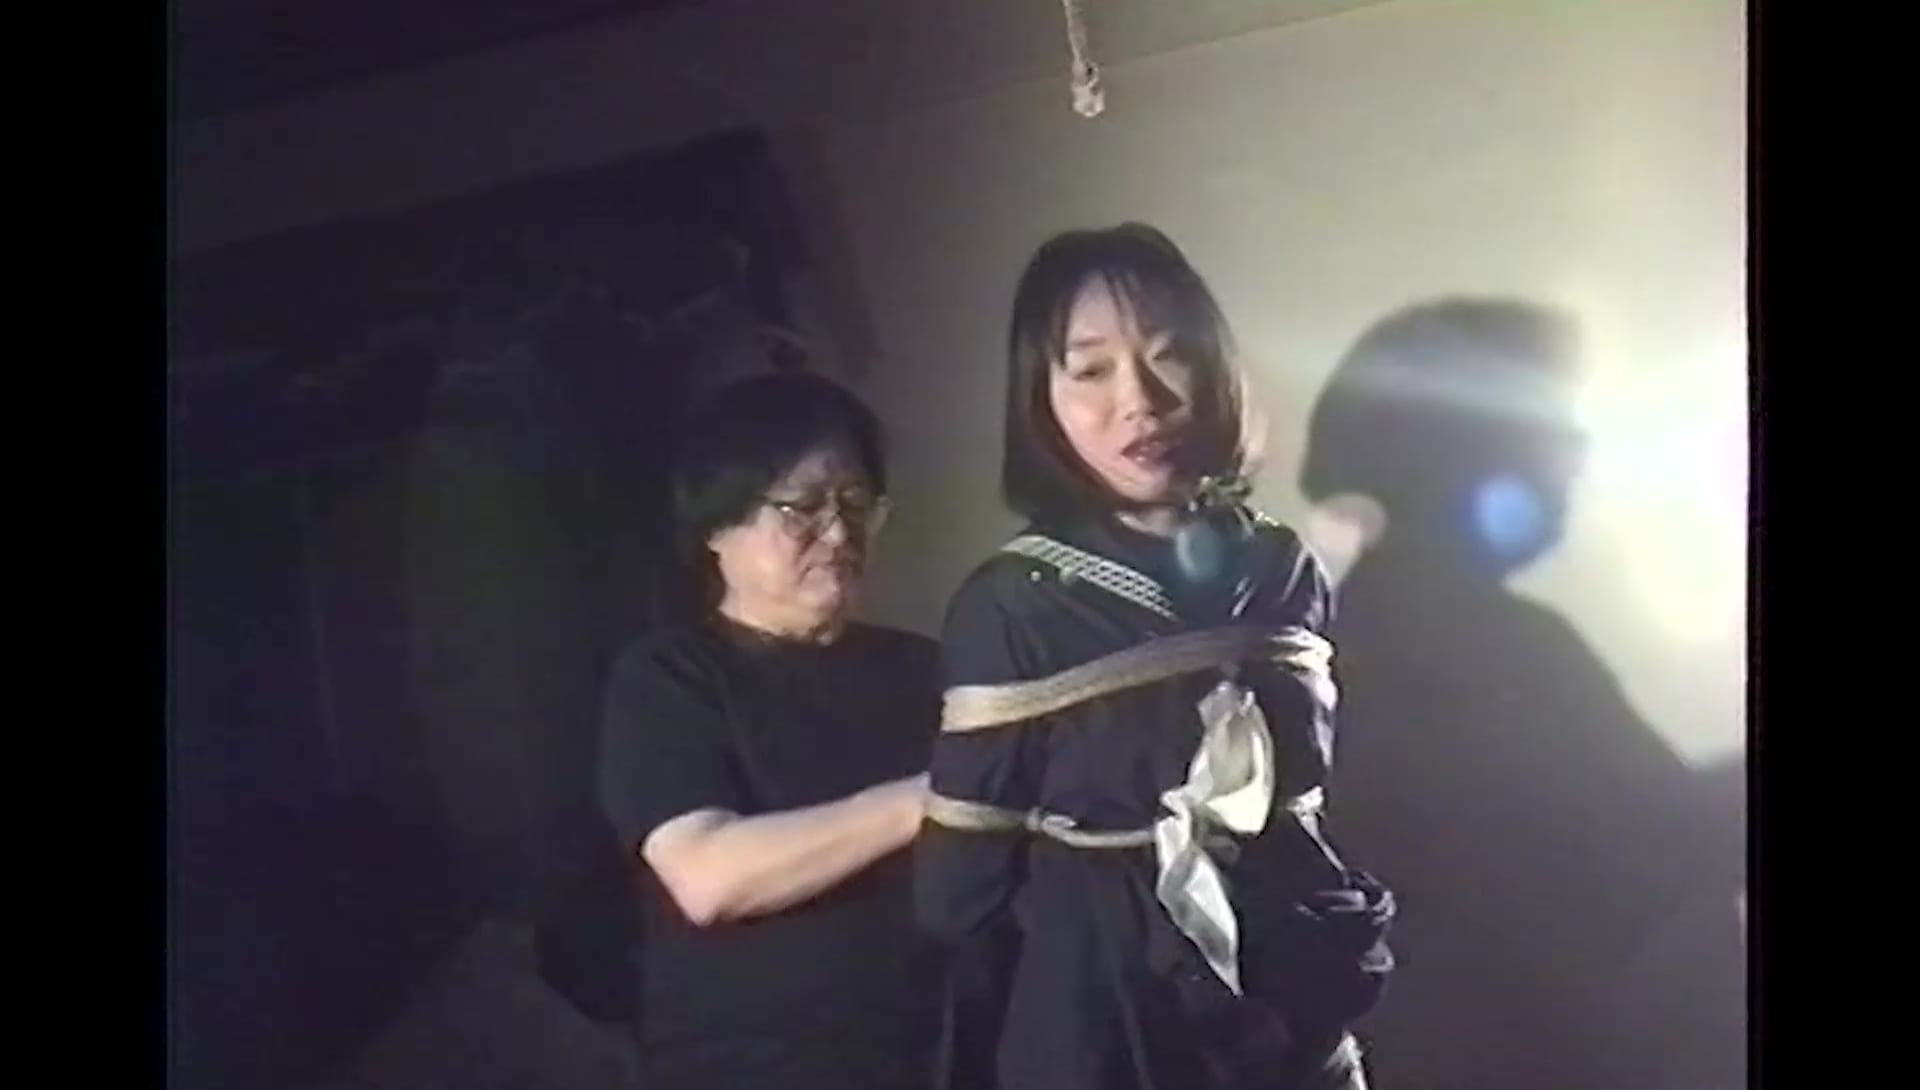 Nureki: Sailor Uniform Humiliation (Kinbaku Cosplay) Japanese Bondage